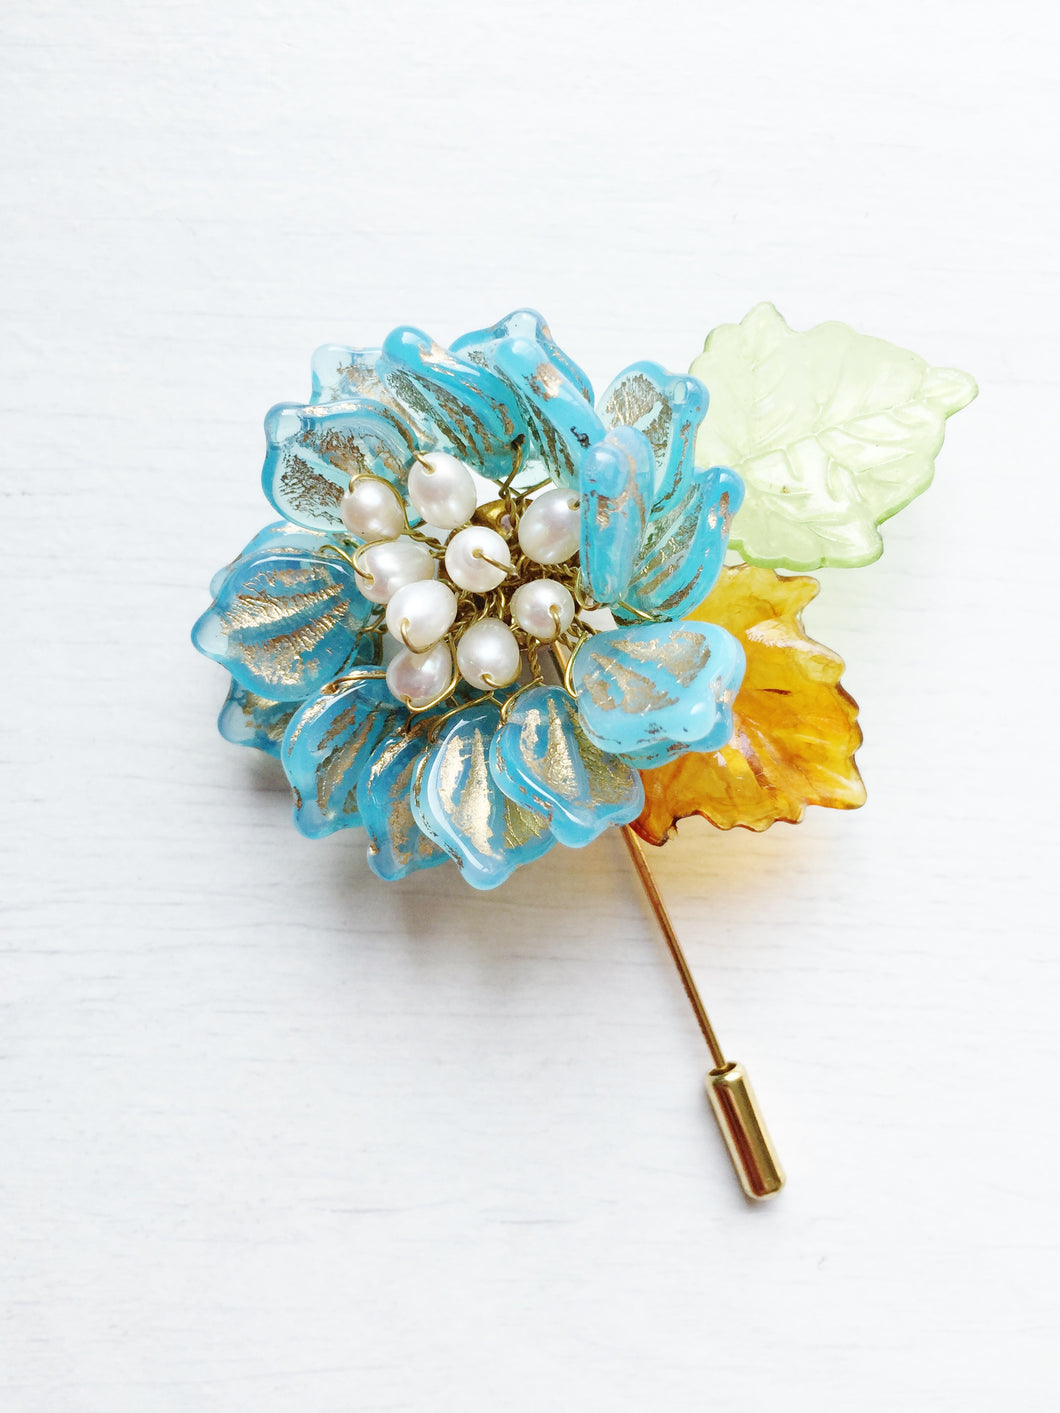 Peony Pin in Turquoise and Gold Glass Petals and White Freshwater Pearls